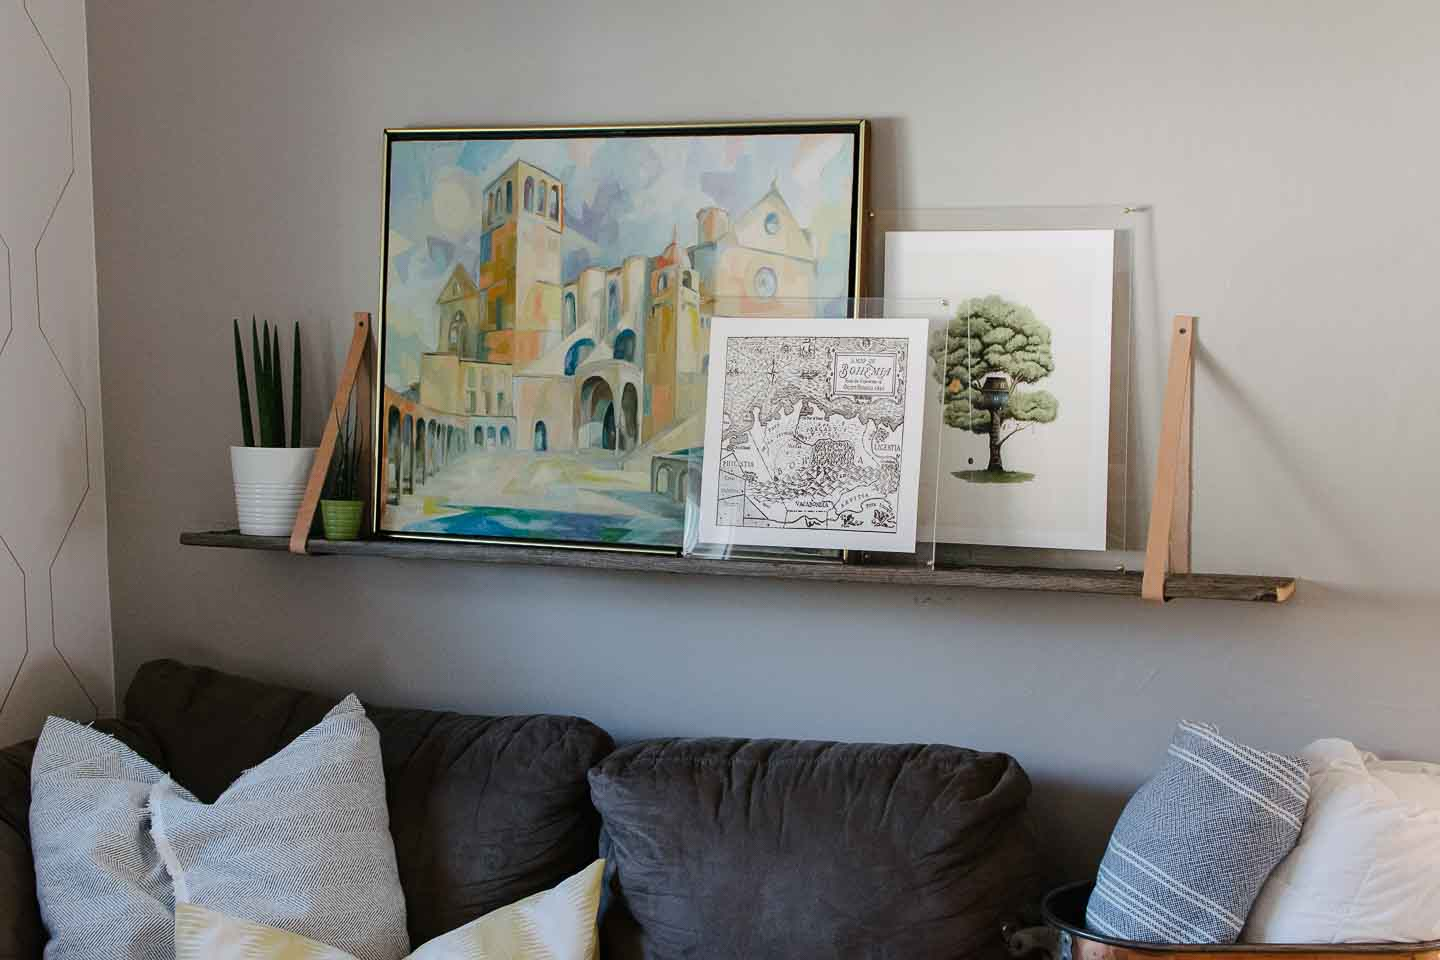 A Simple, Stunning, And Affordable DIY frame for art made with plexiglass and brass hardware